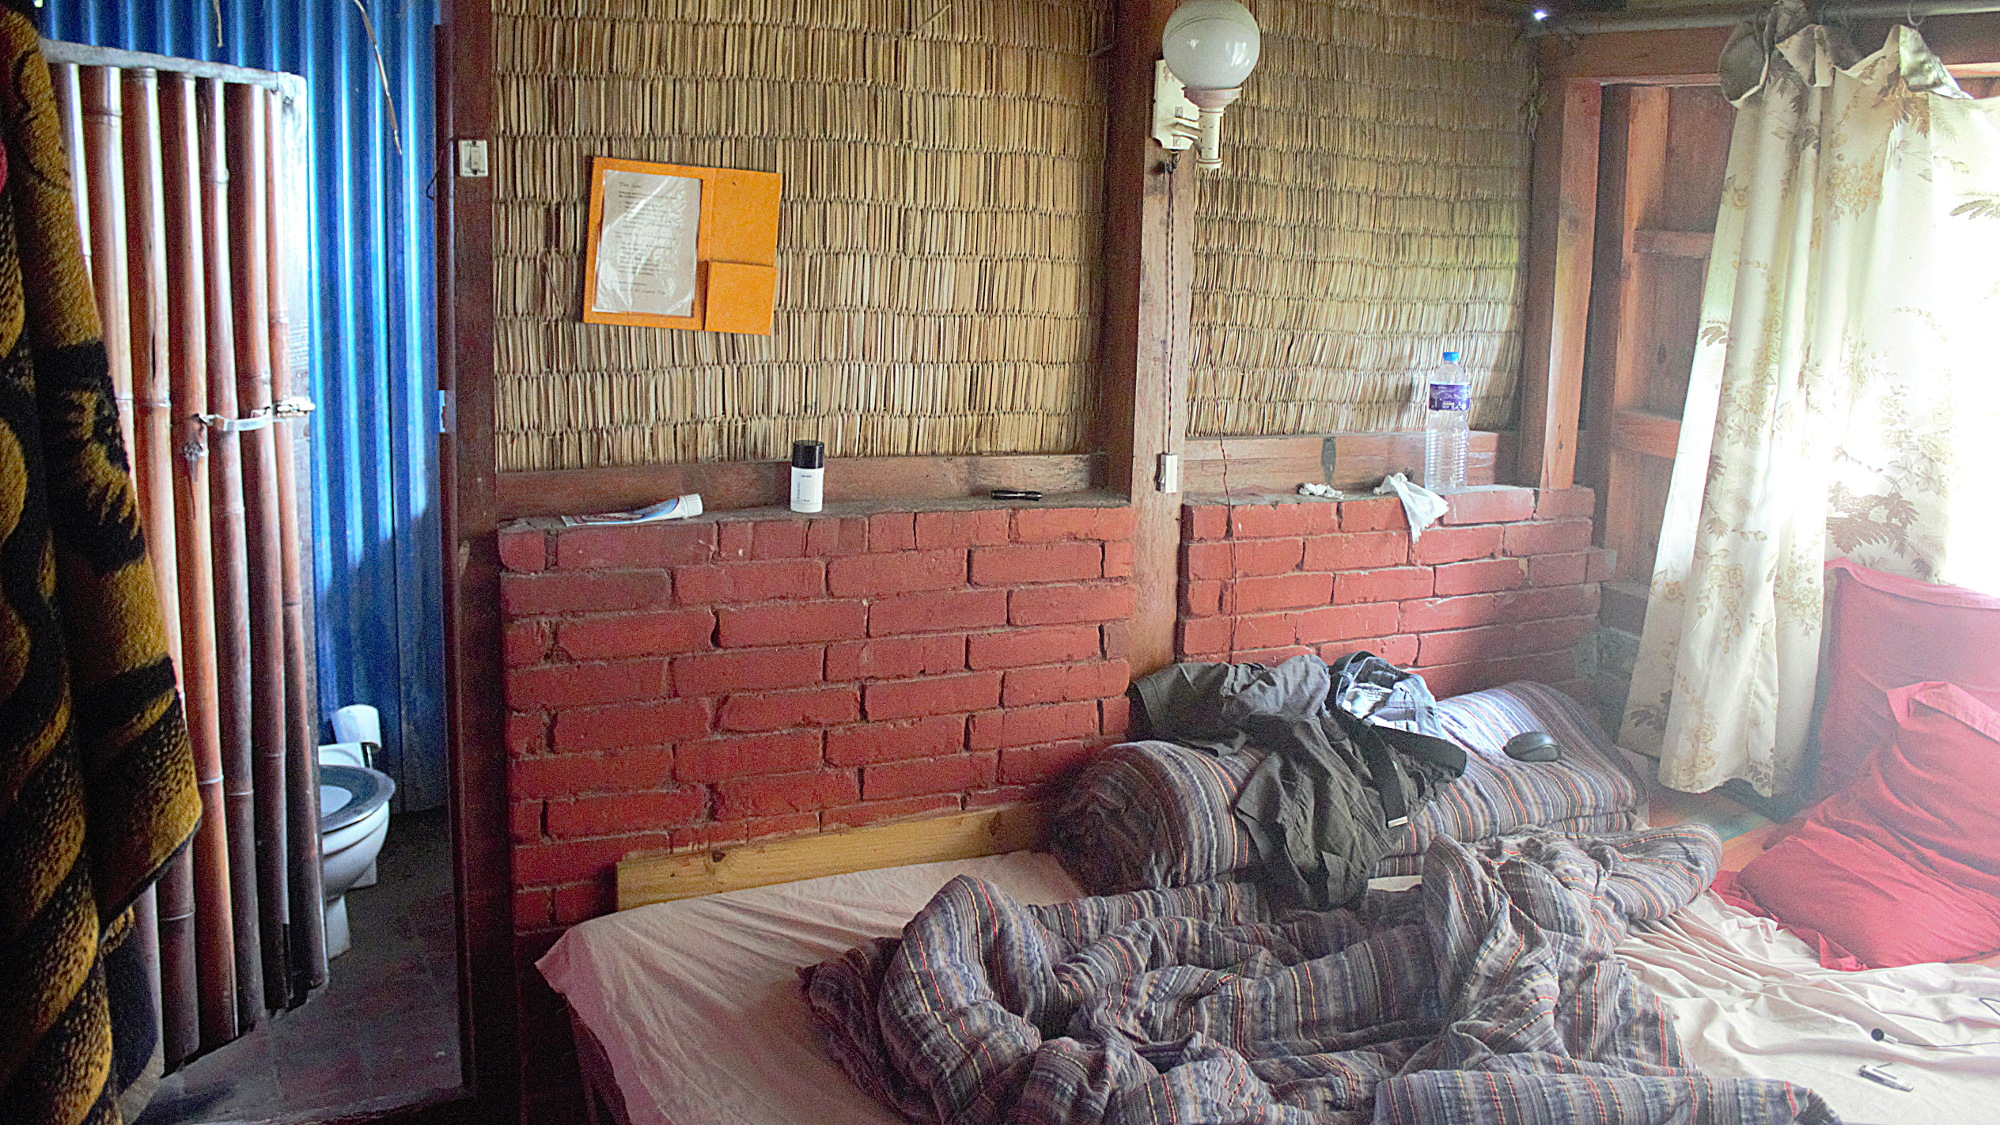 A tiny hotel cottage room in Hotel at the End of the Universe, Nagarkot, Nepal.